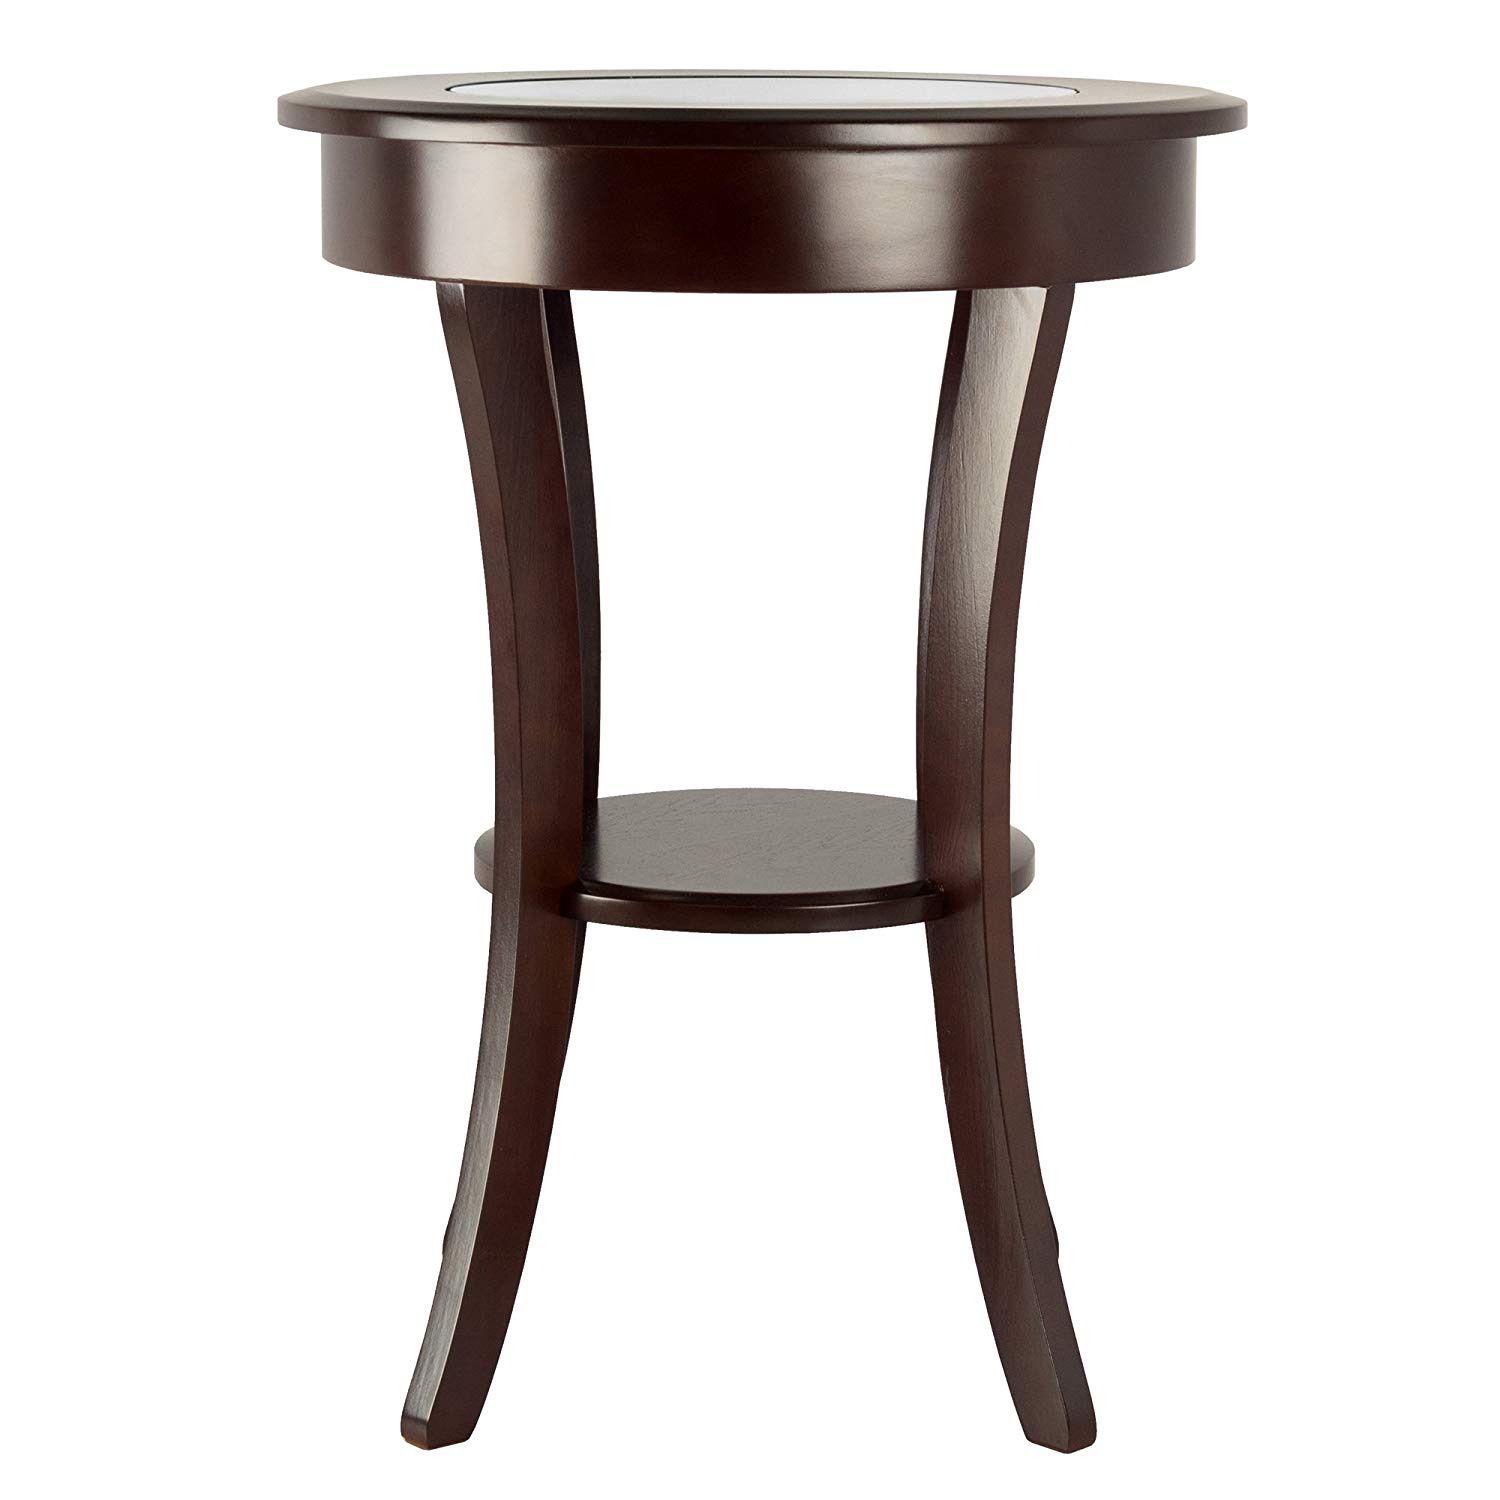 winsome wood cassie accent table cappuccino with glass top finish kitchen dining target vanity narrow small entry acrylic console shelf outdoor beach decor home furnishings